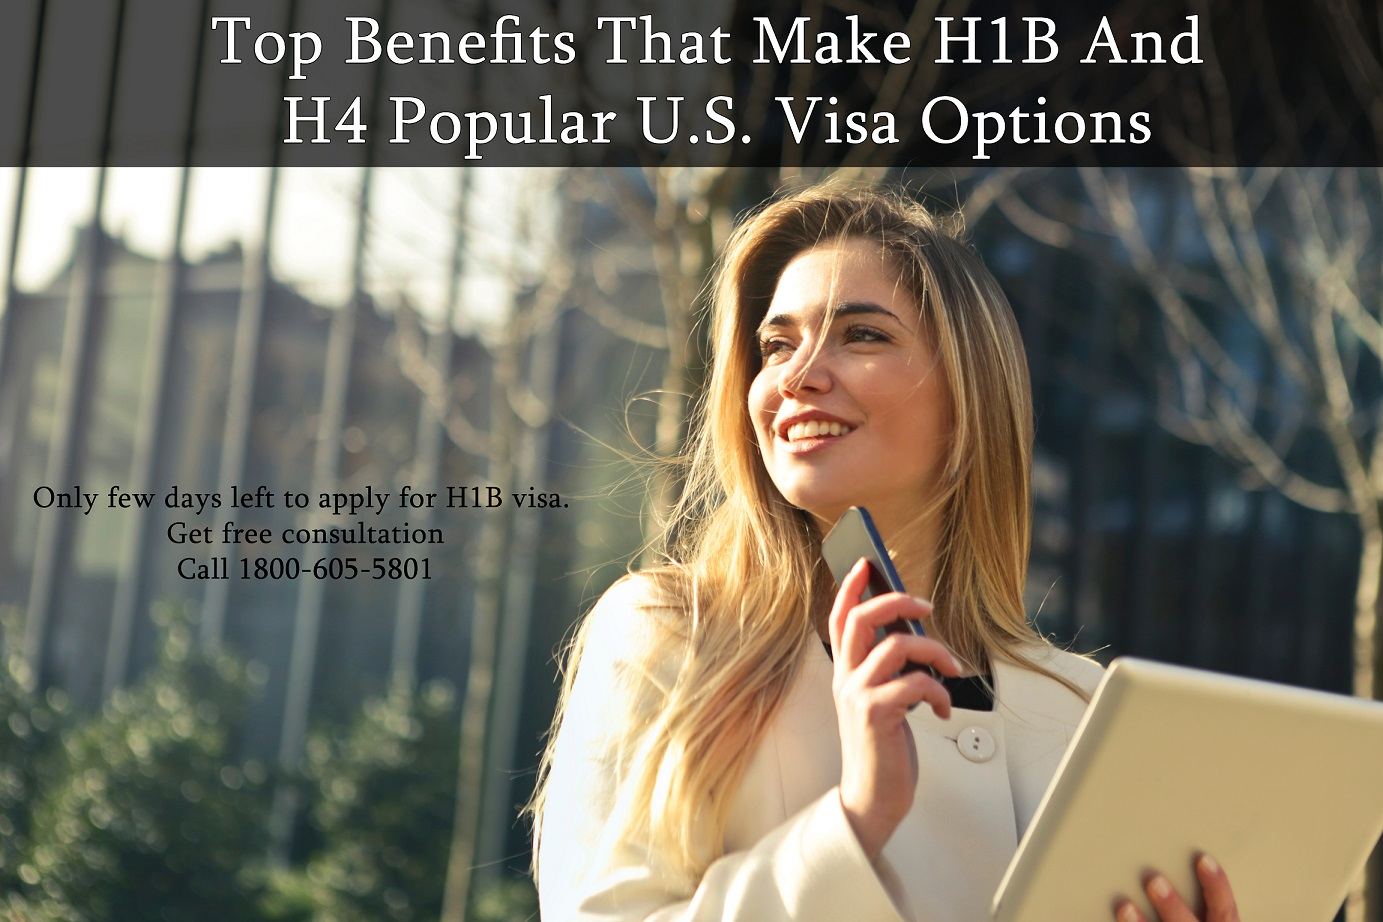 H1B Workers Can Study in the U.S